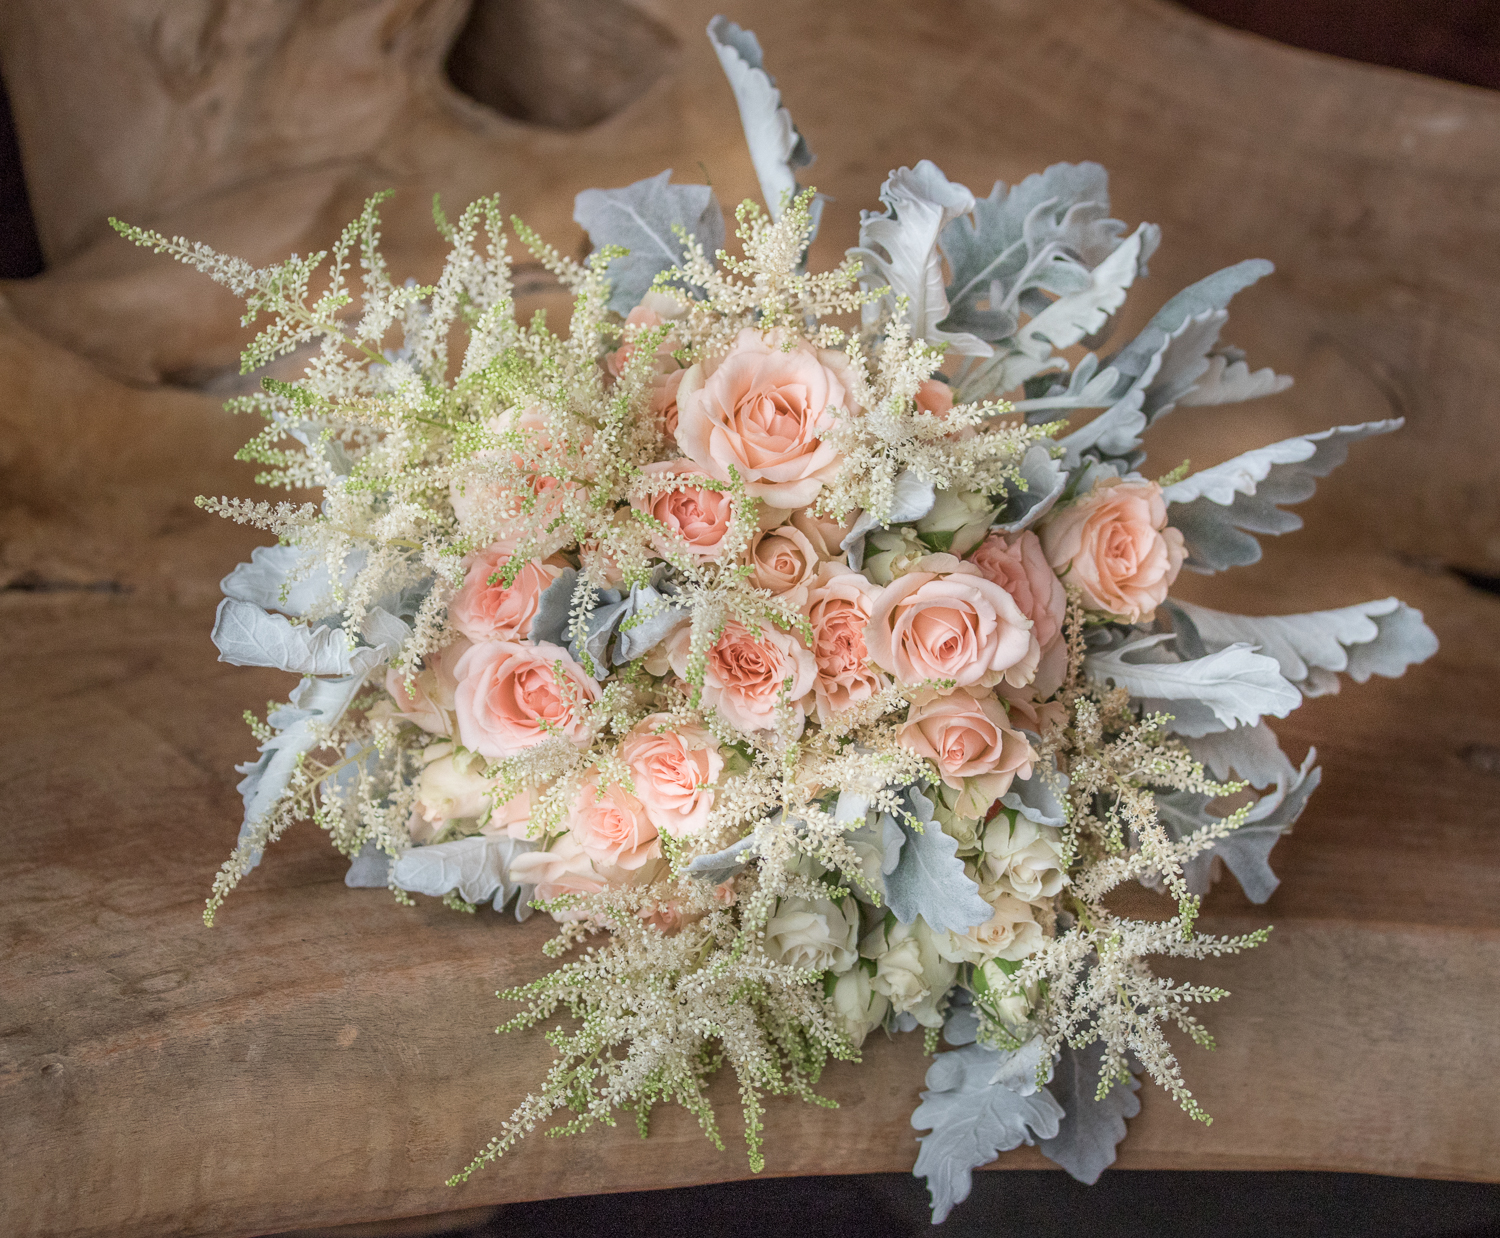 Spray Rose Dusty Miller Astilbe bouqet.jpg